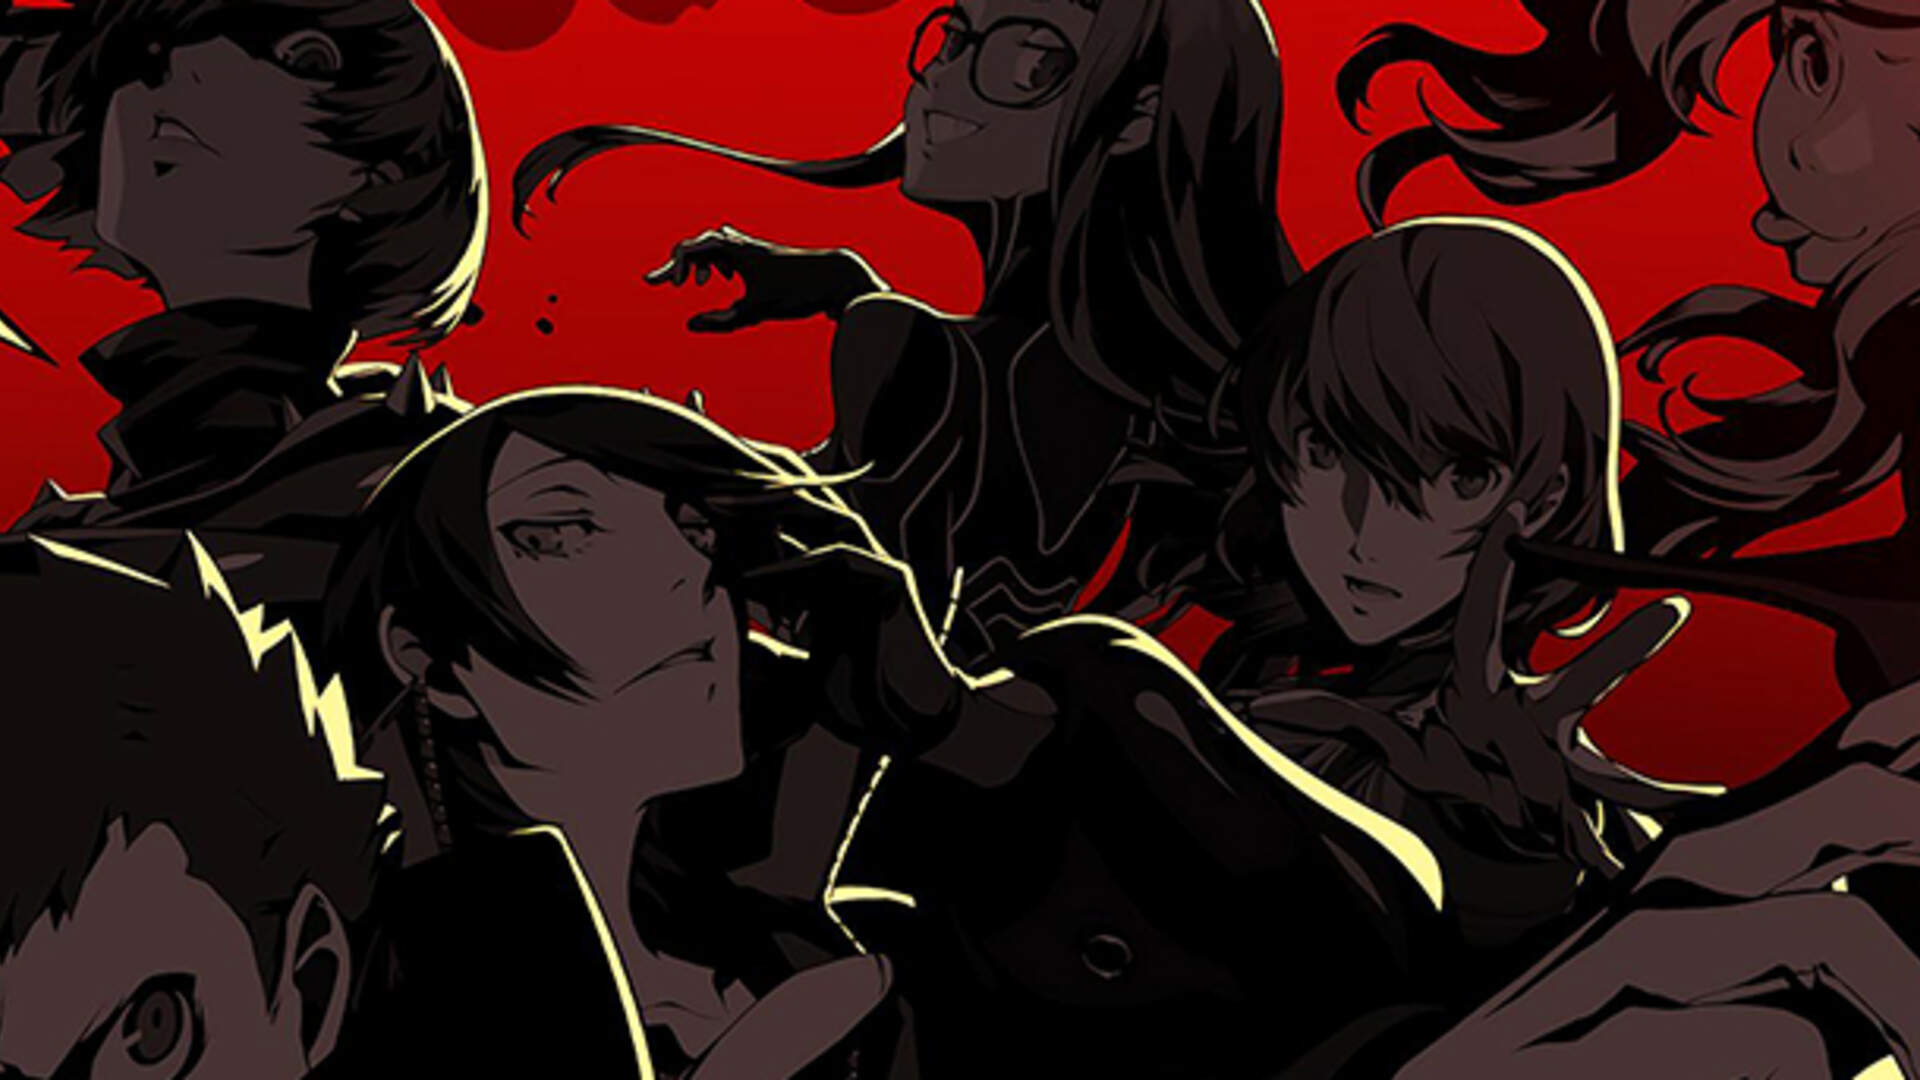 [Update] Atlus Issued a DMCA Takedown on a PS3 Emulator Patreon Over Persona 5